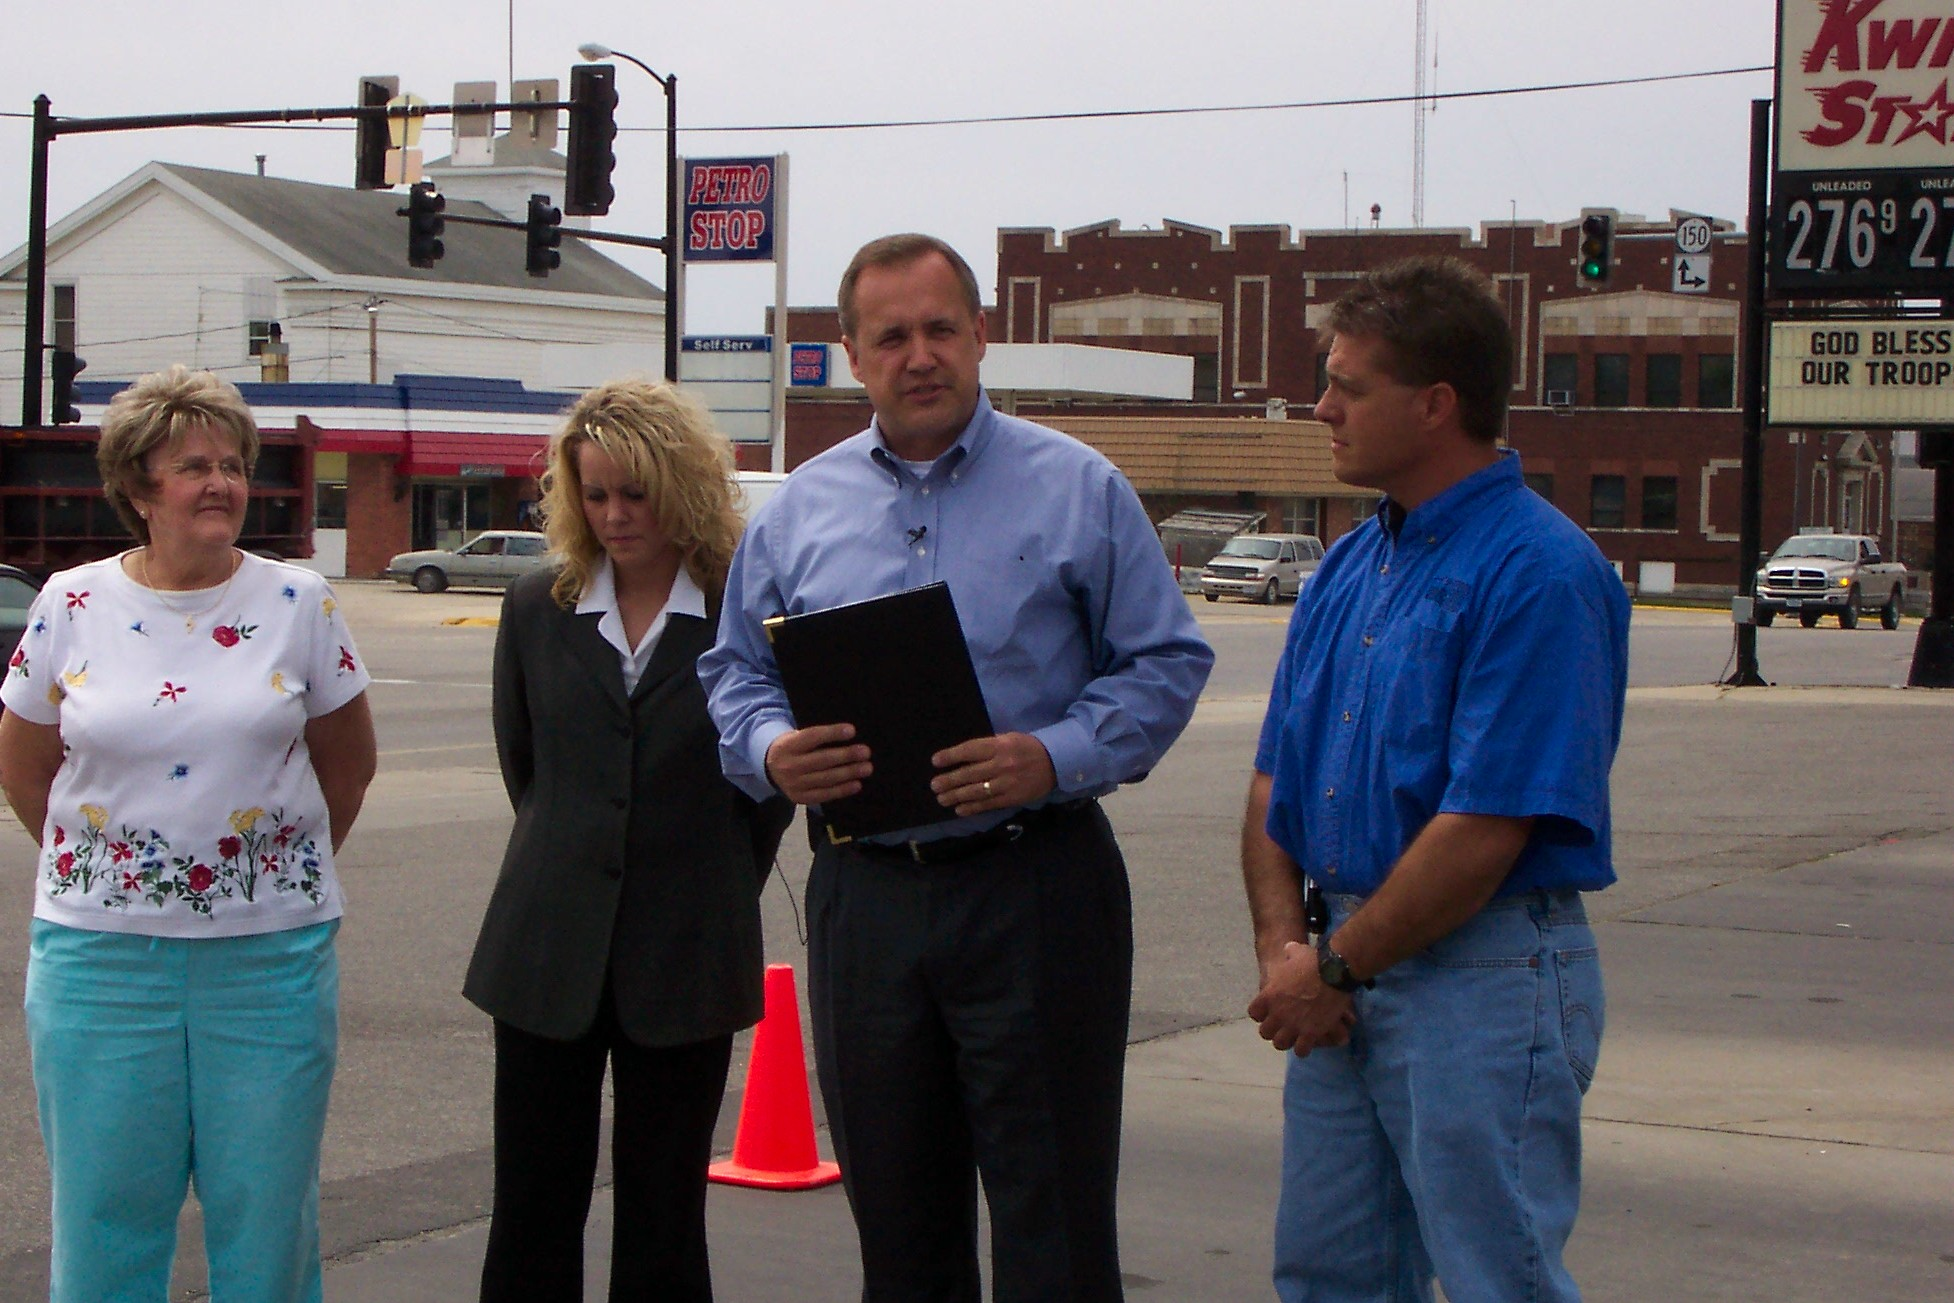 Jim unveils new energy legislation at a gas station in Independence.